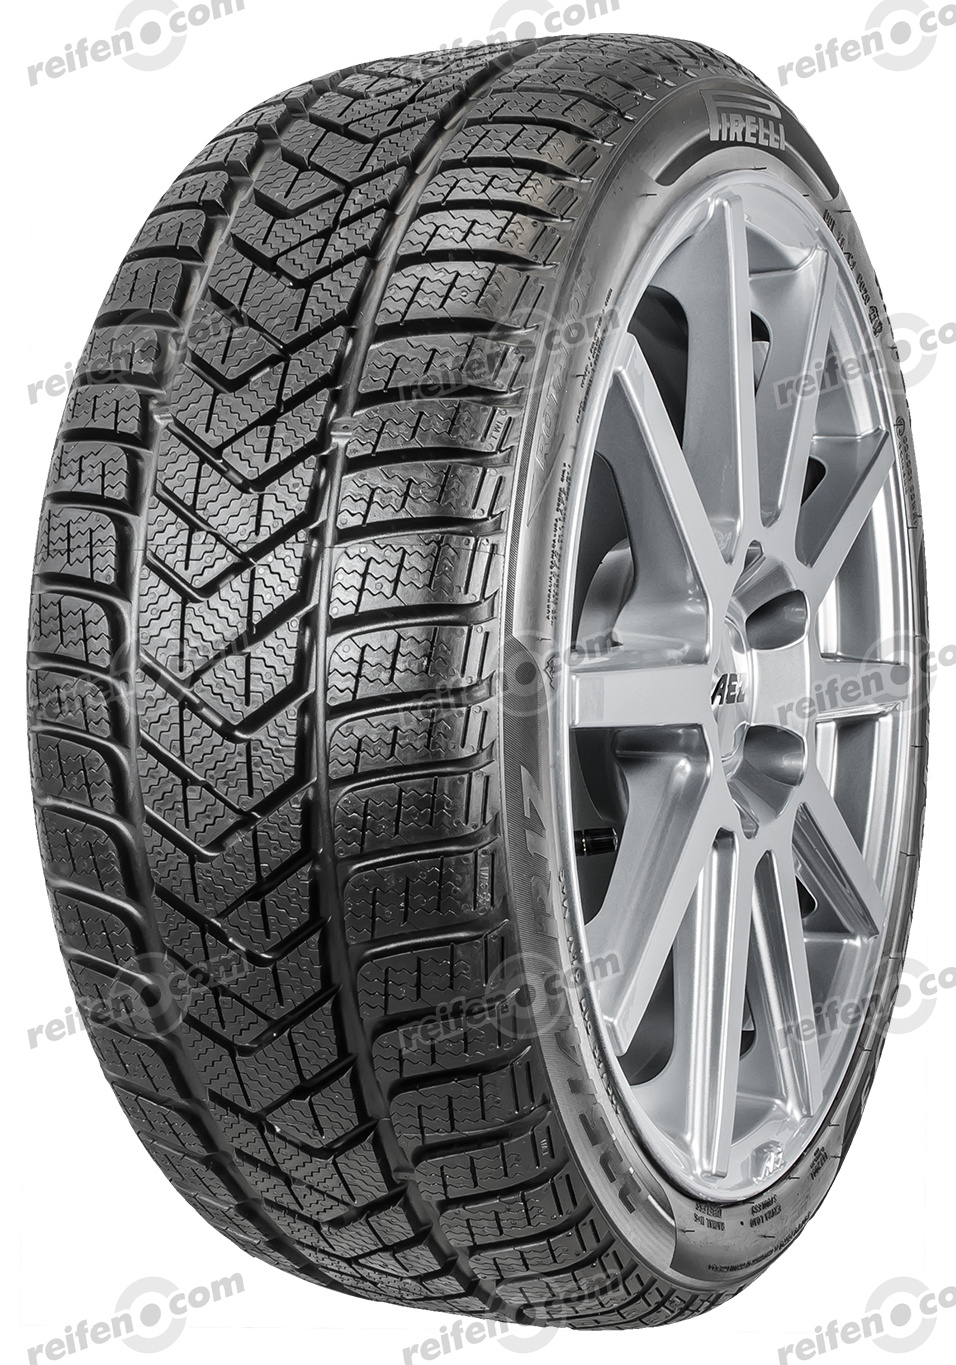 225/40 R18 92V Winter Sottozero 3 XL KS M+S  Winter Sottozero 3 XL KS M+S